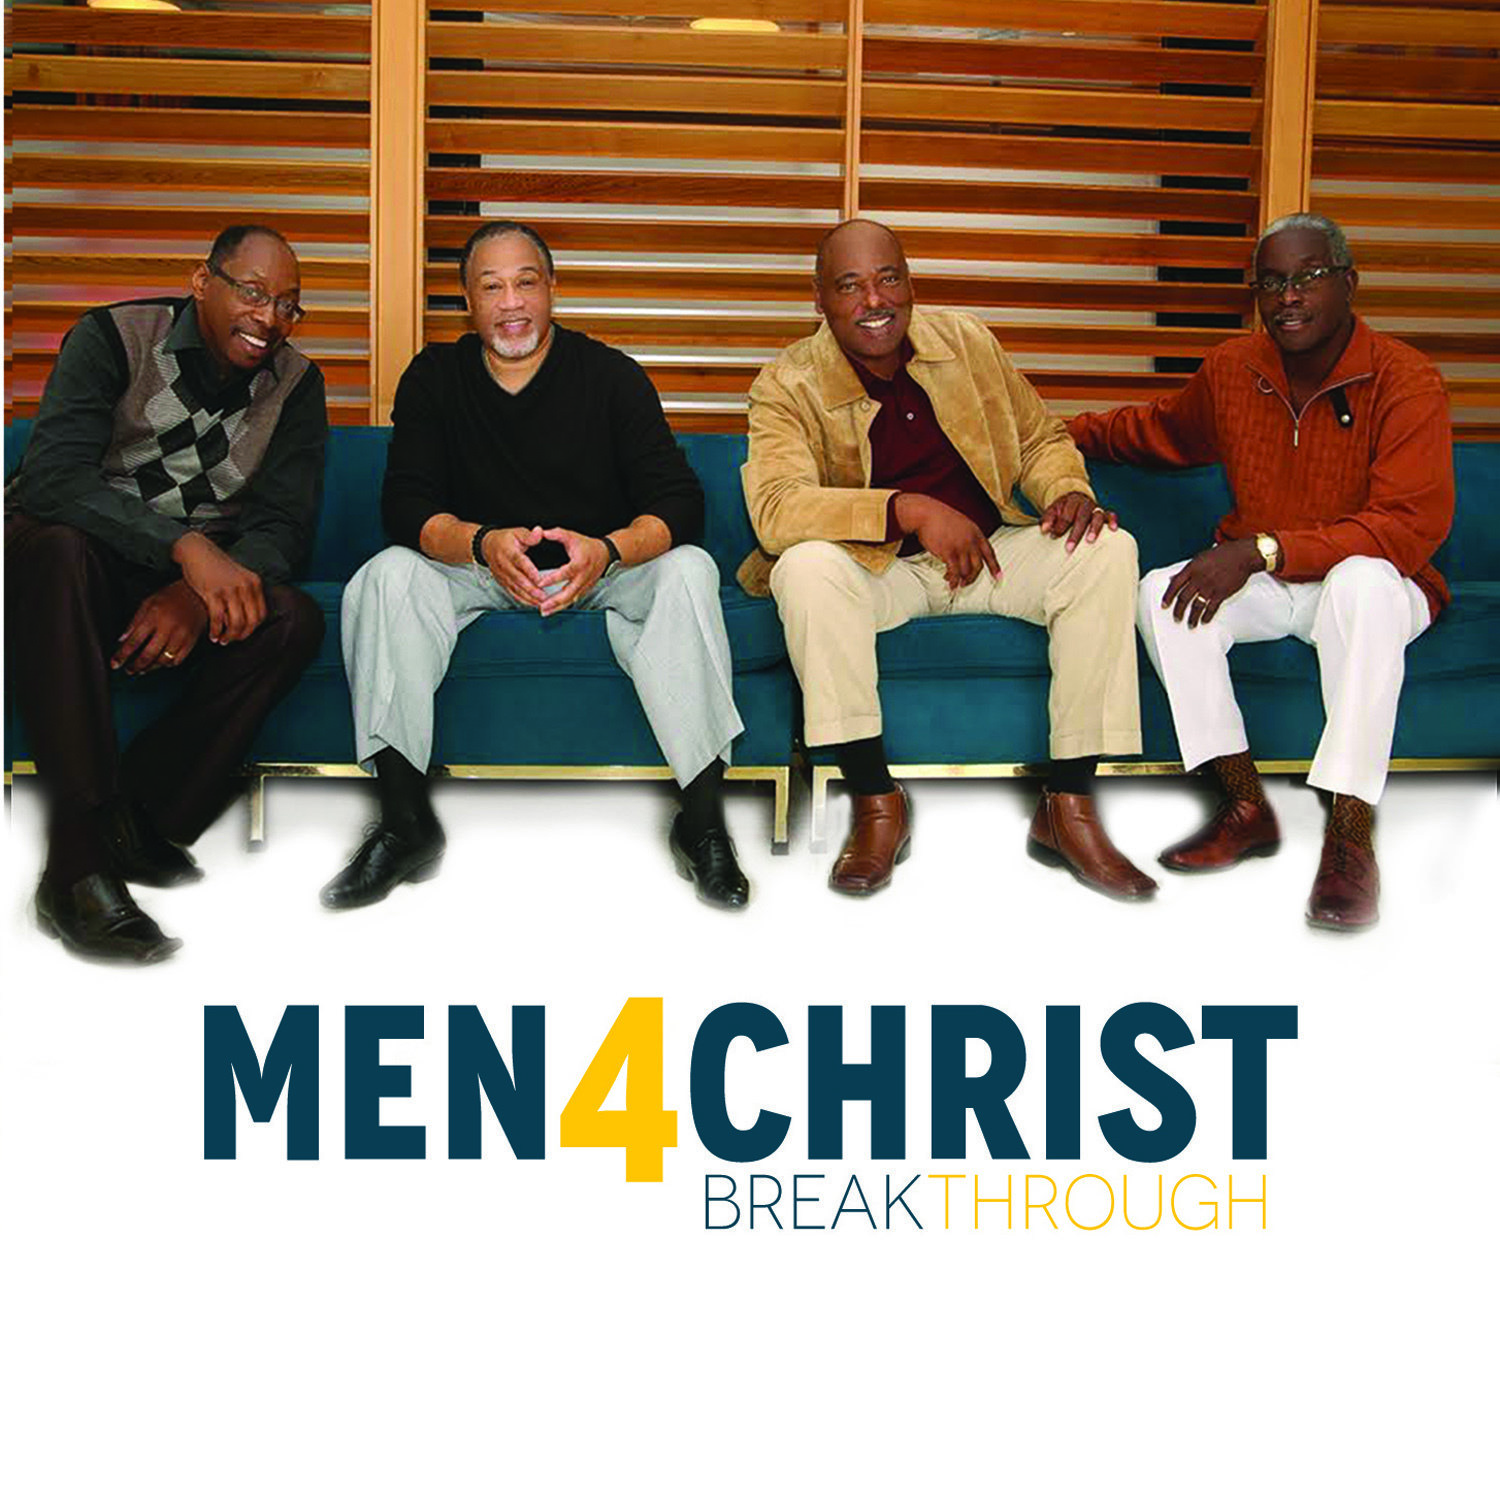 Men 4 Christ - Breakthrough (Physical Copy) 00002